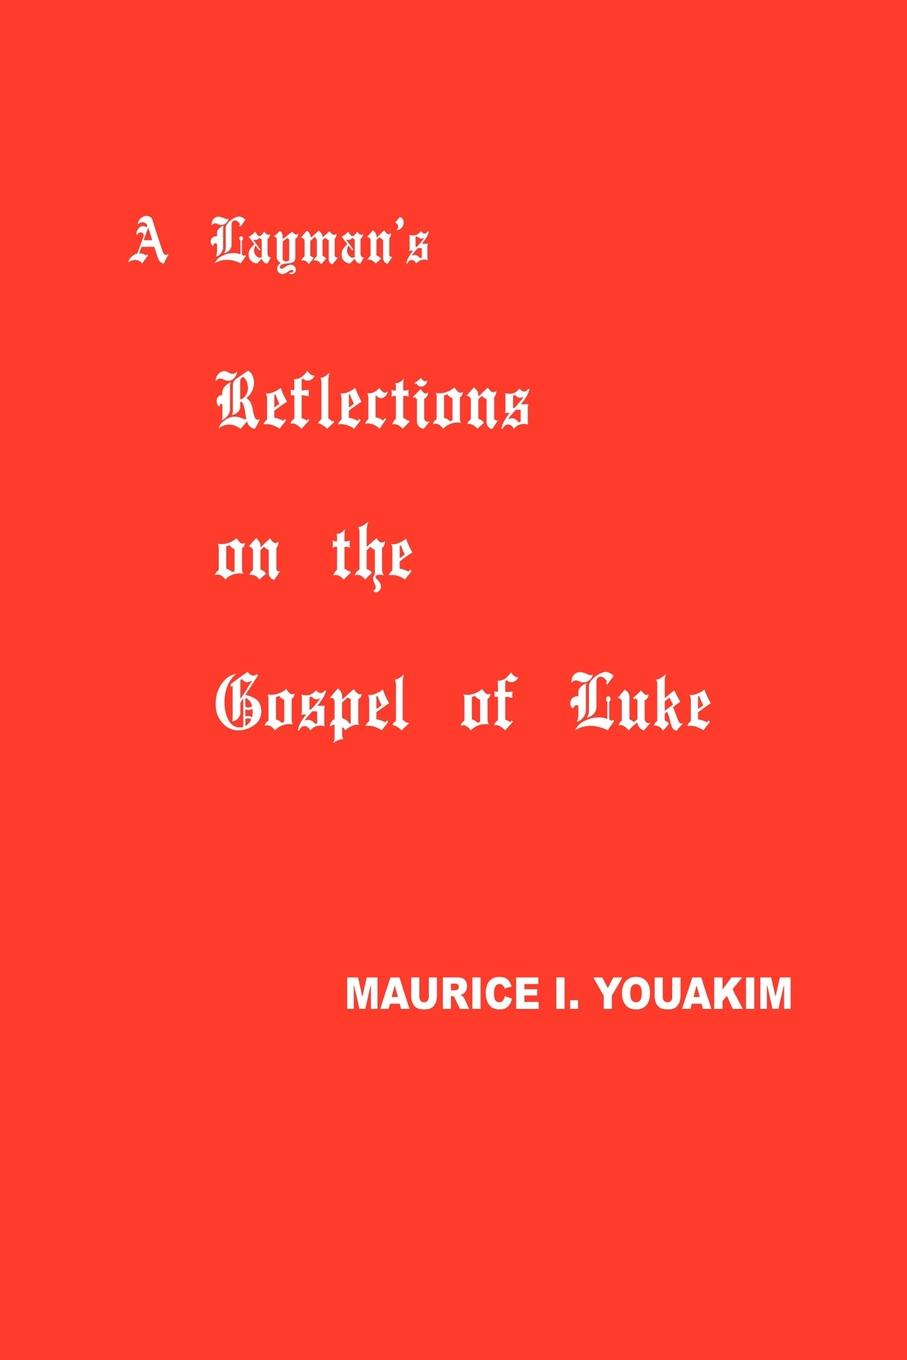 Maurice Youakim A Layman.s Reflections on the Gospel of Luke philosophical reflections